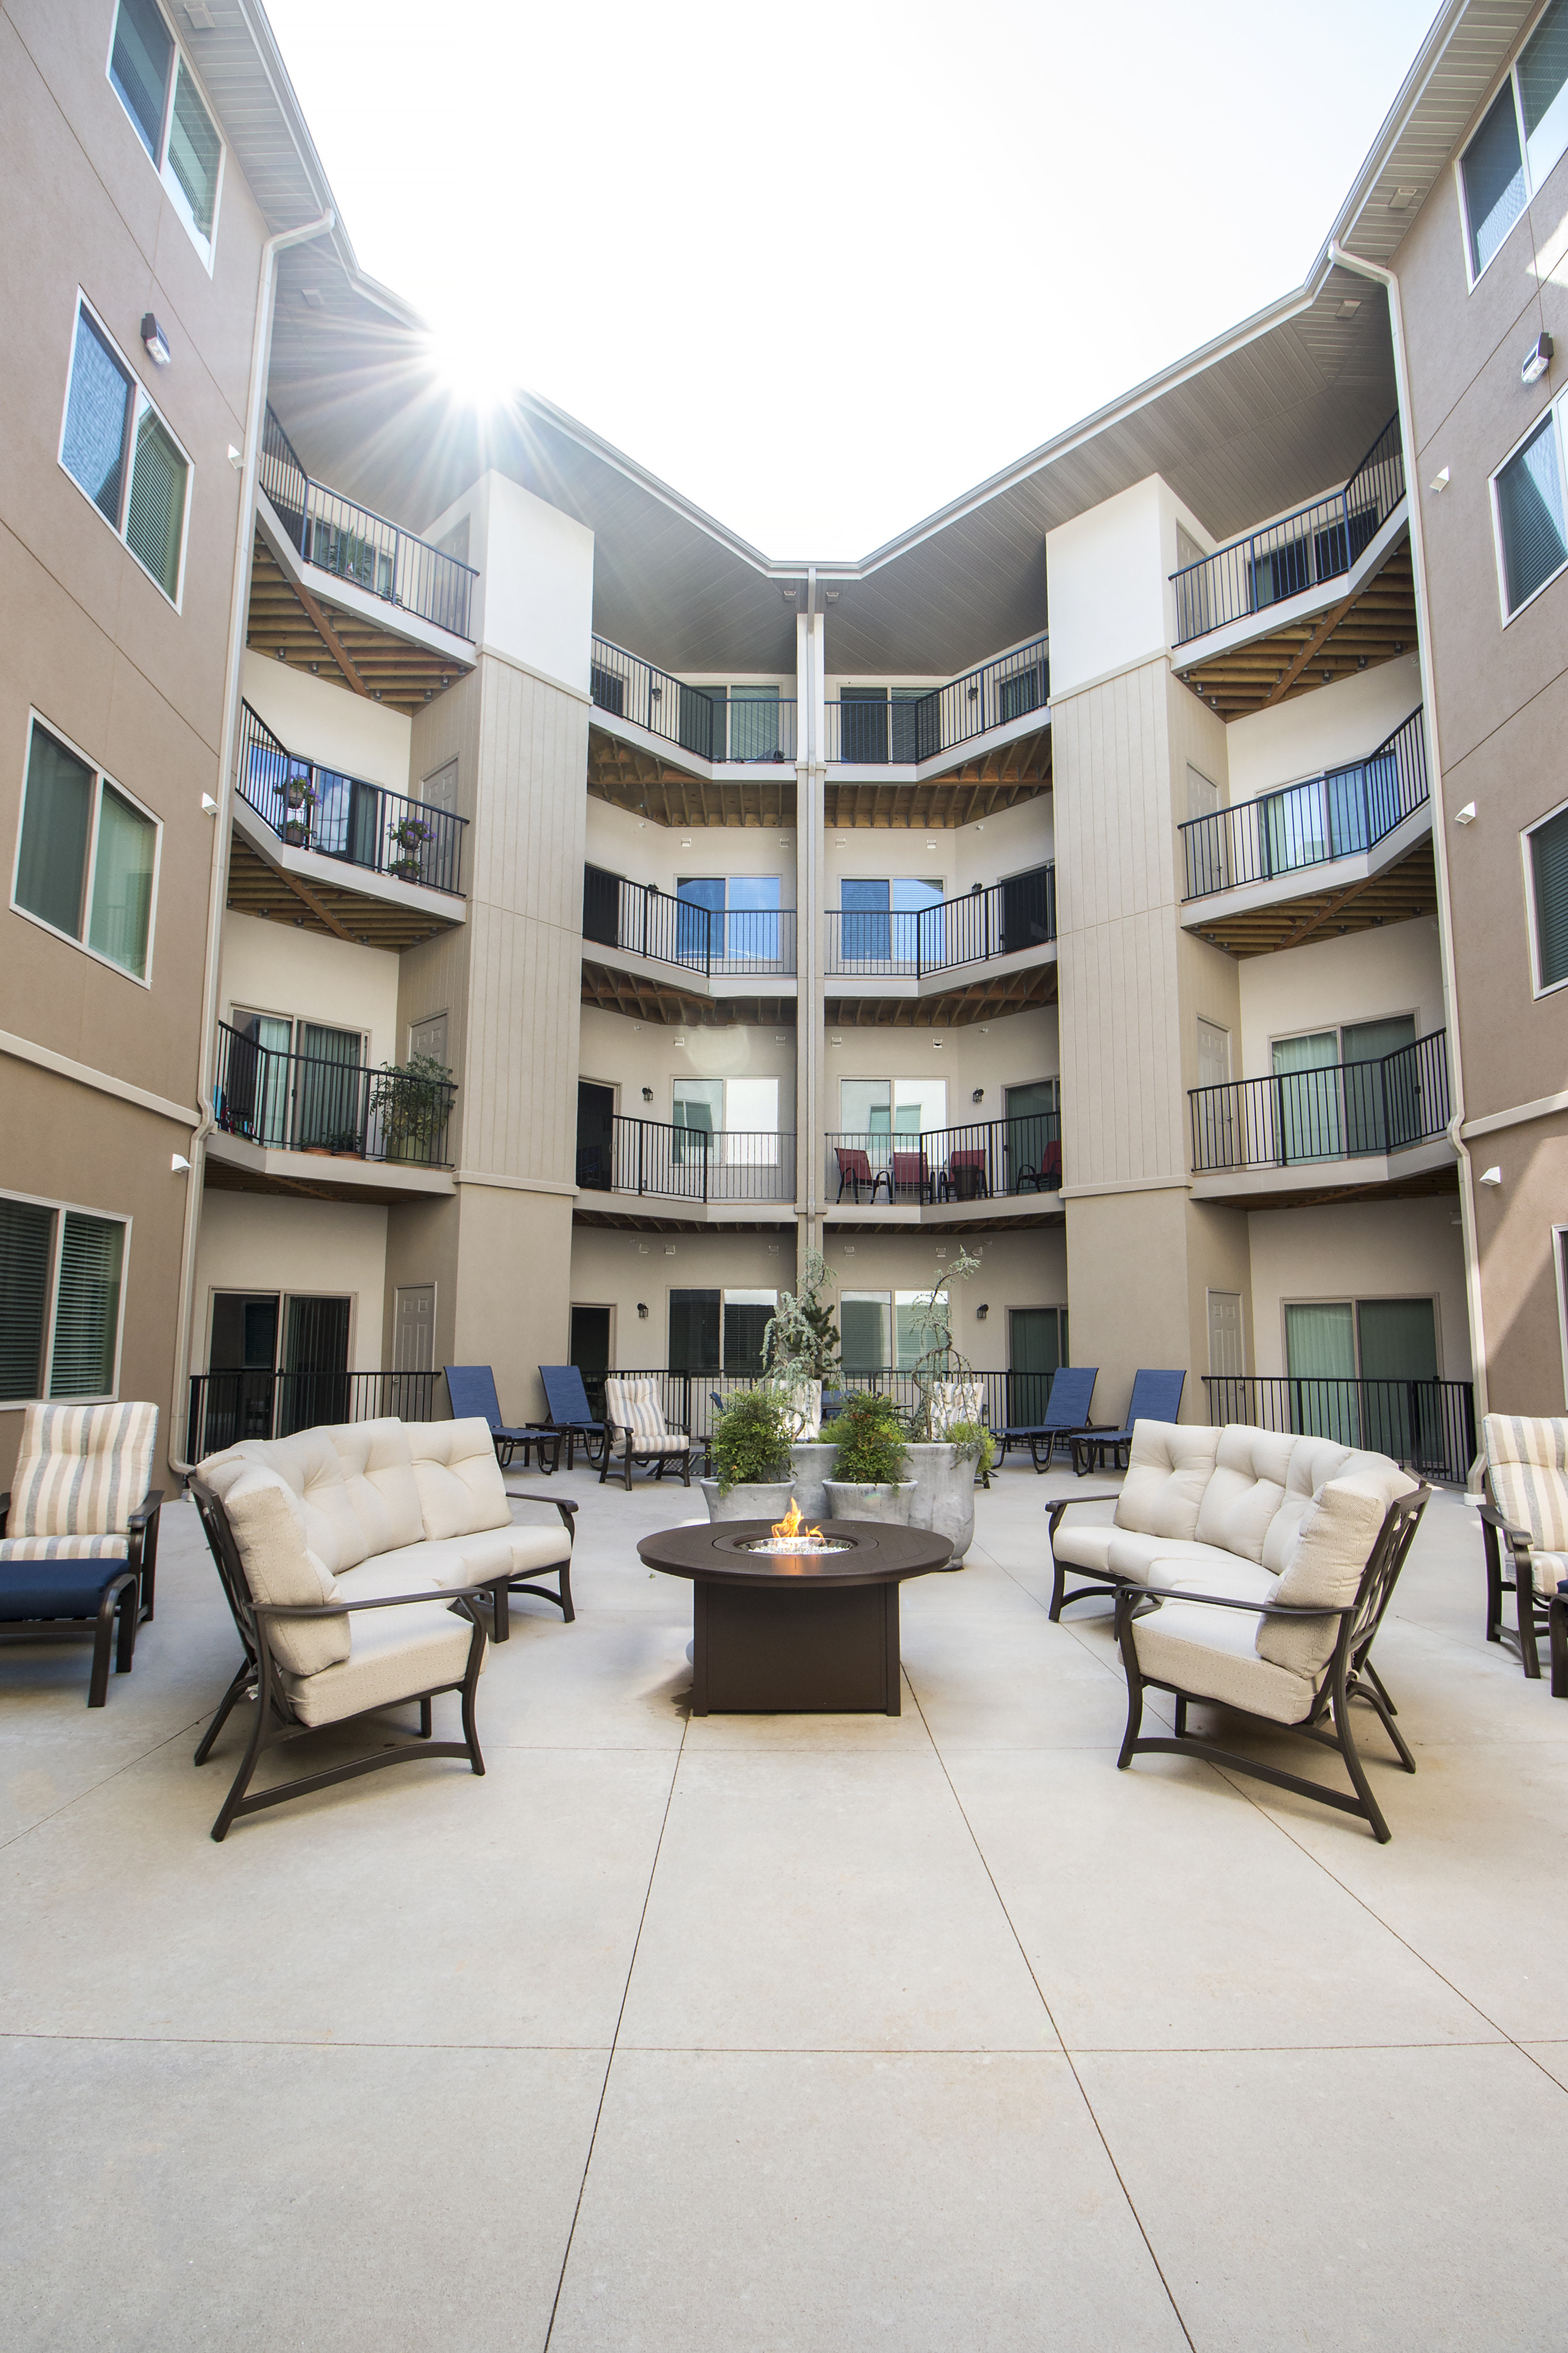 Coryell Commons 55+ courtyard with seating and fire pit